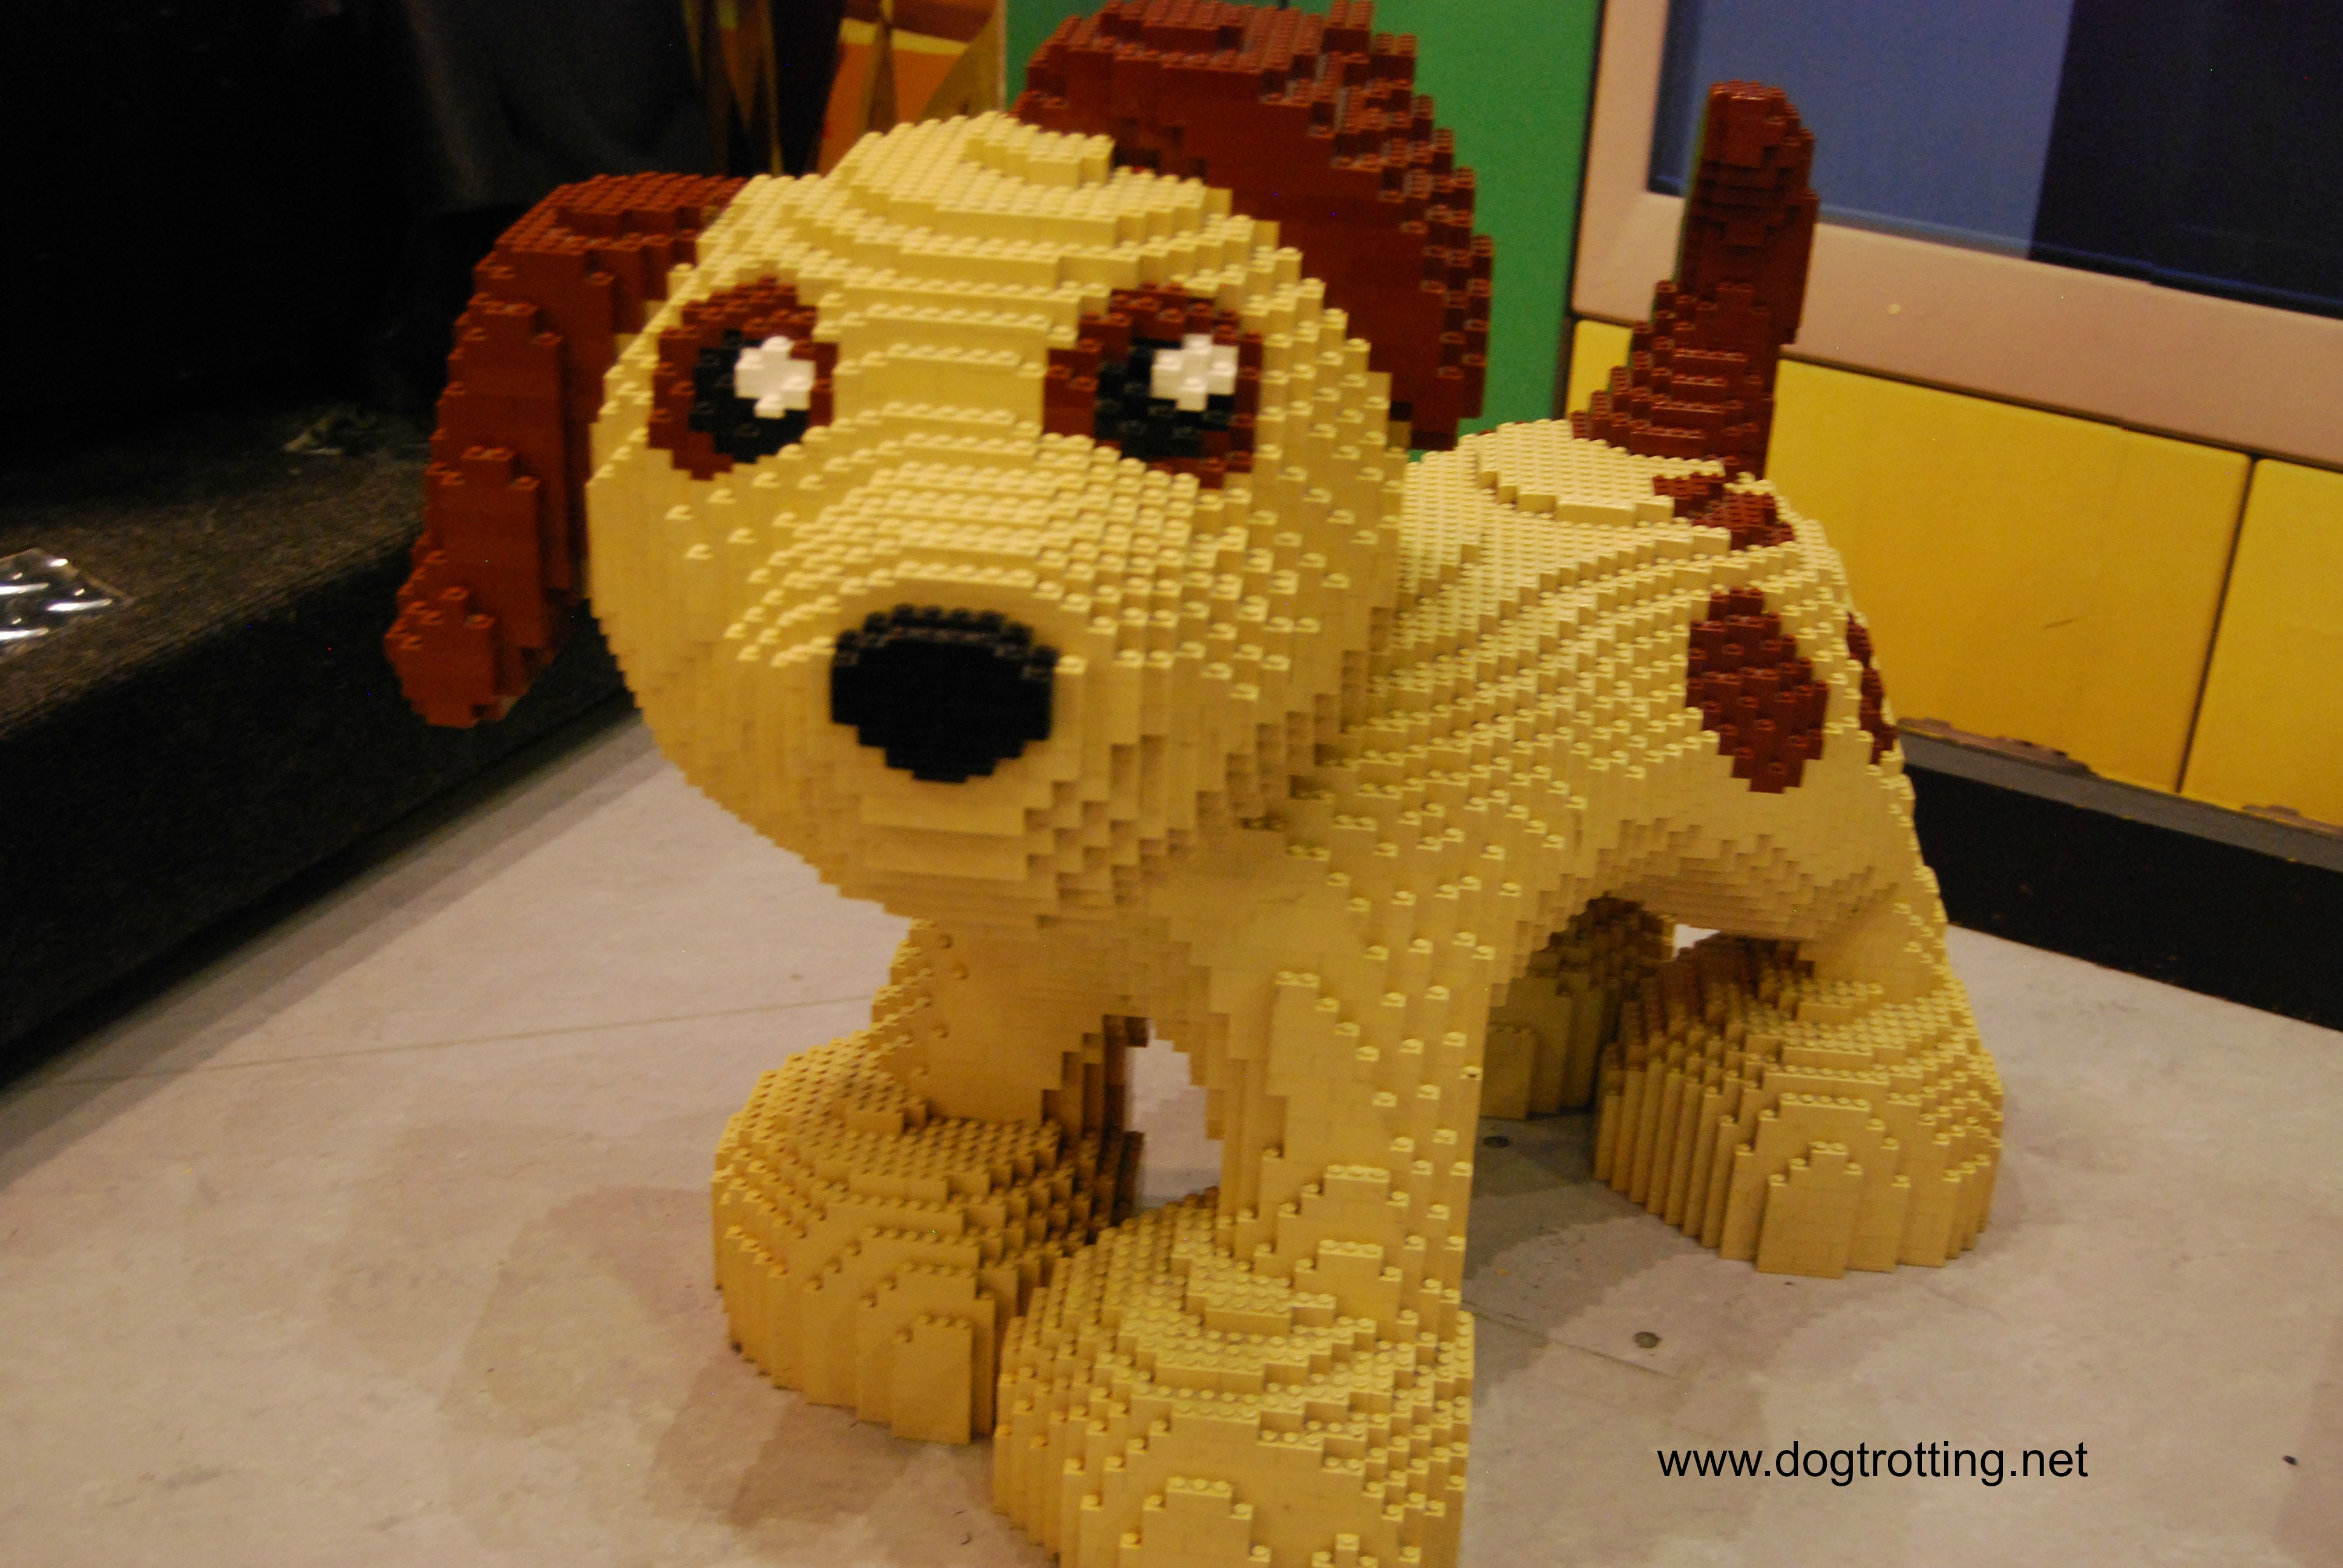 Travel Toronto, ON: Legoland and the most photographed (Lego) Dog in Town